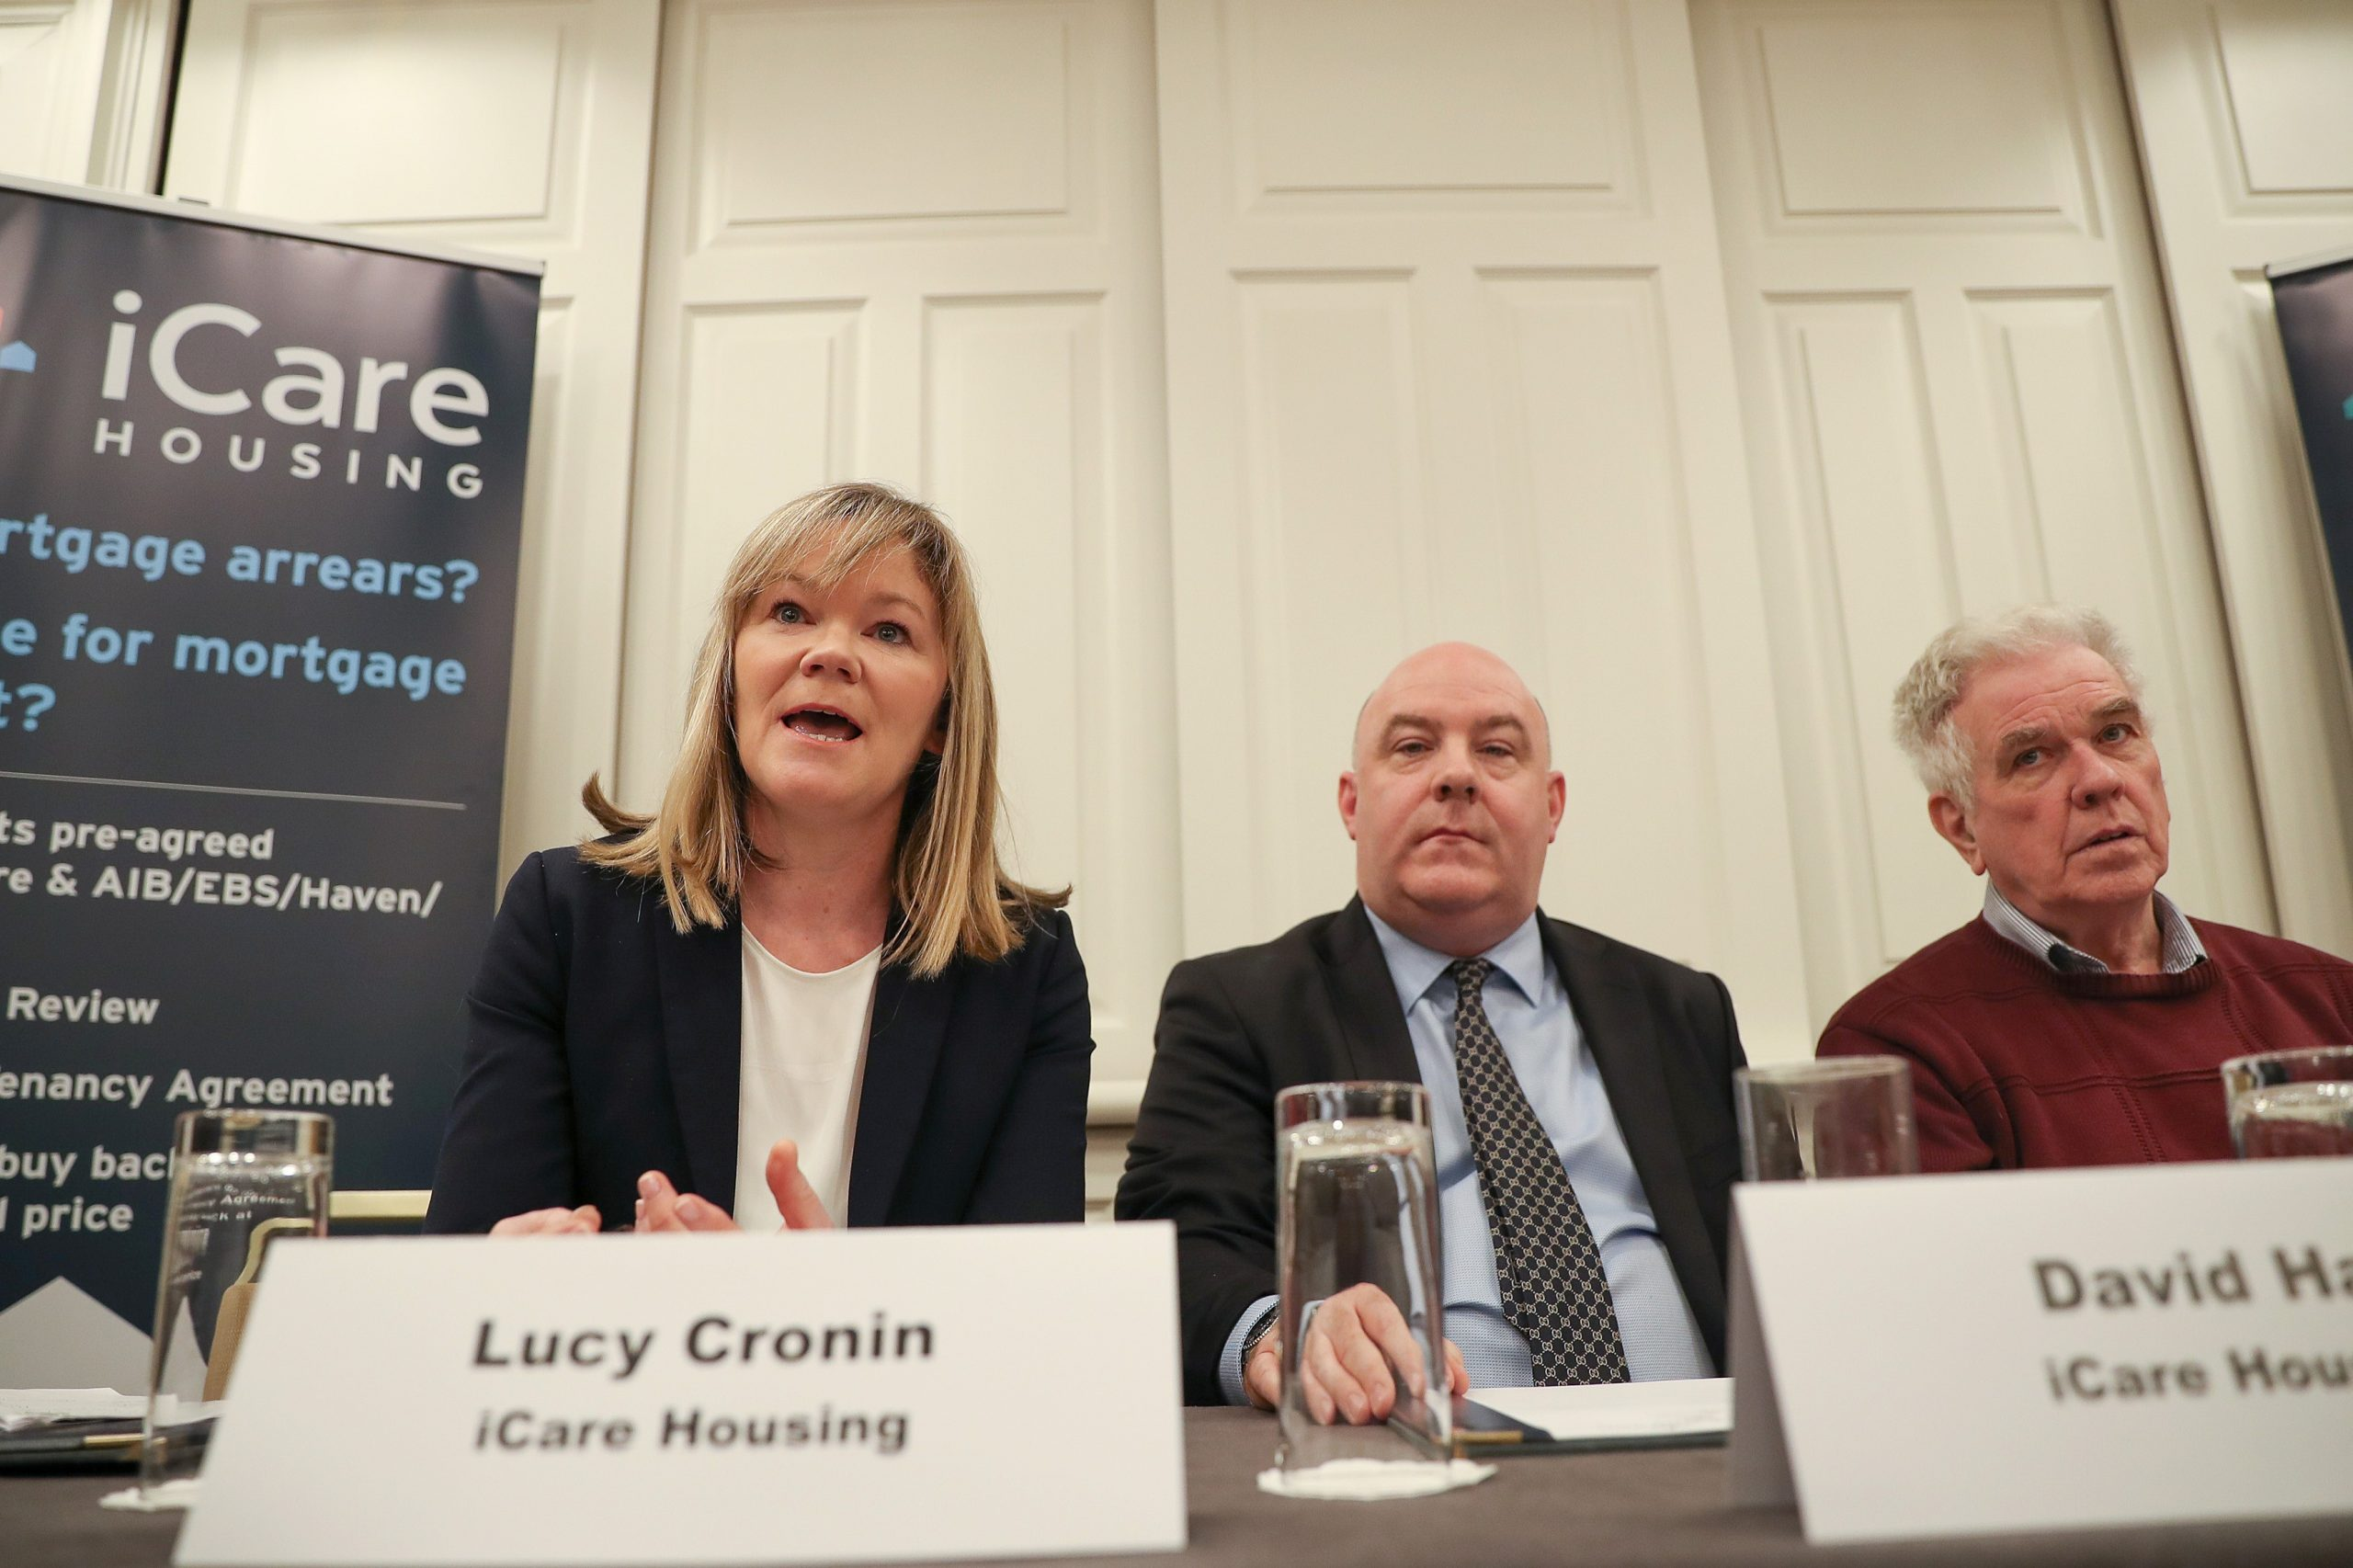 Irish Times: iCare Scheme Keeps Distressed Borrowers In Their Homes